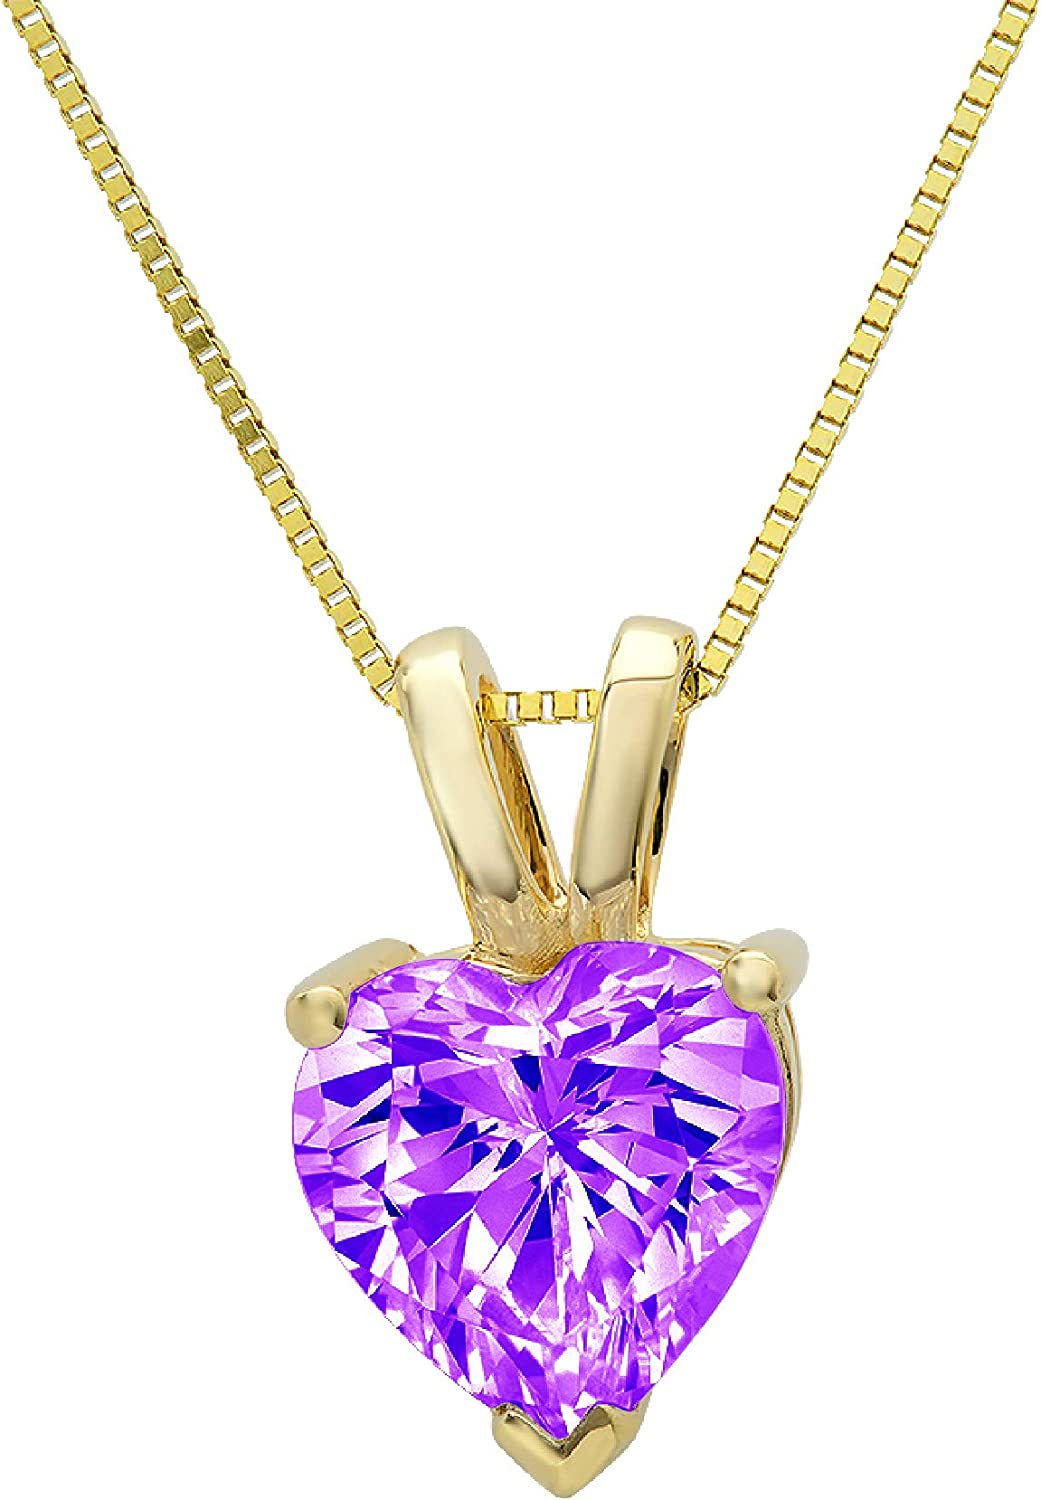 2.0 ct Brilliant Heart Cut Stunning Genuine Natural Purple Amethyst Ideal VVS1 D Solitaire Pendant Necklace With 16